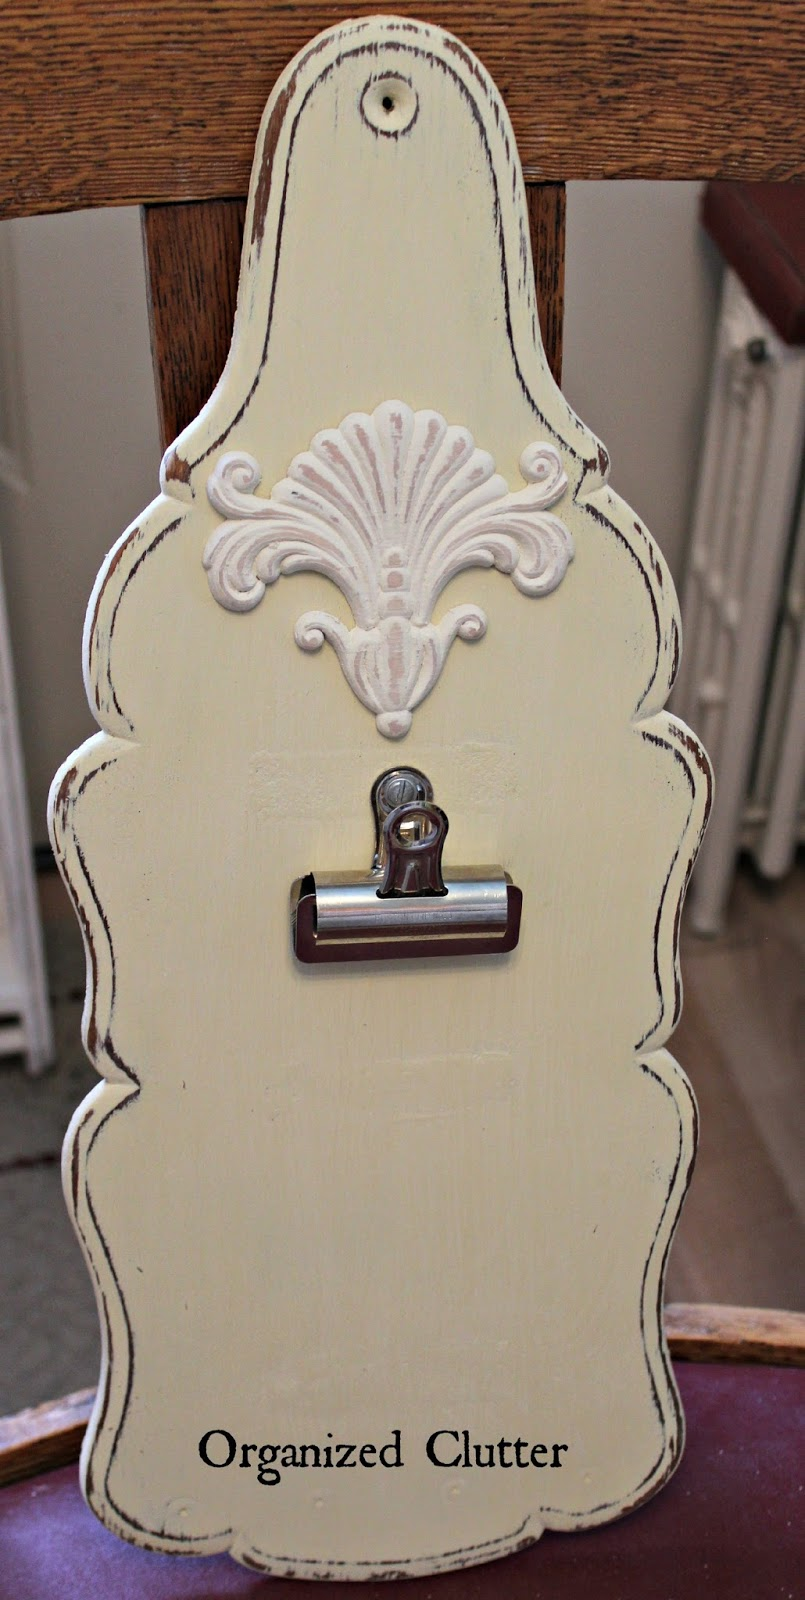 Fun Photo Display with Bulldog Clips www.organizedclutterqueen.blogspot.com